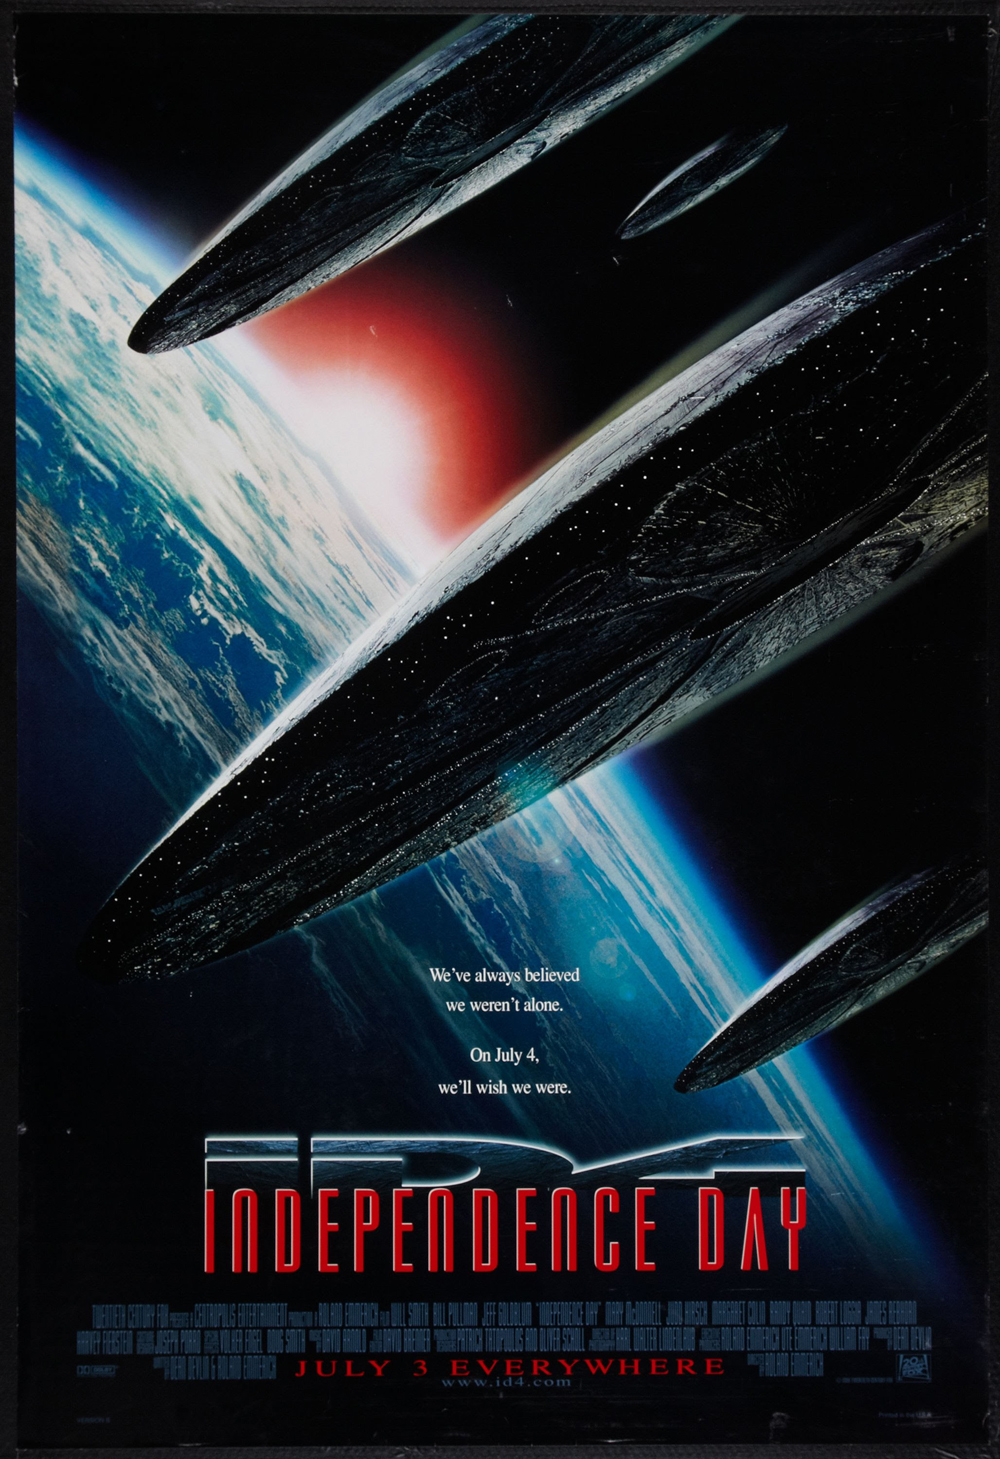 independence_day_poster_1996_02.jpg